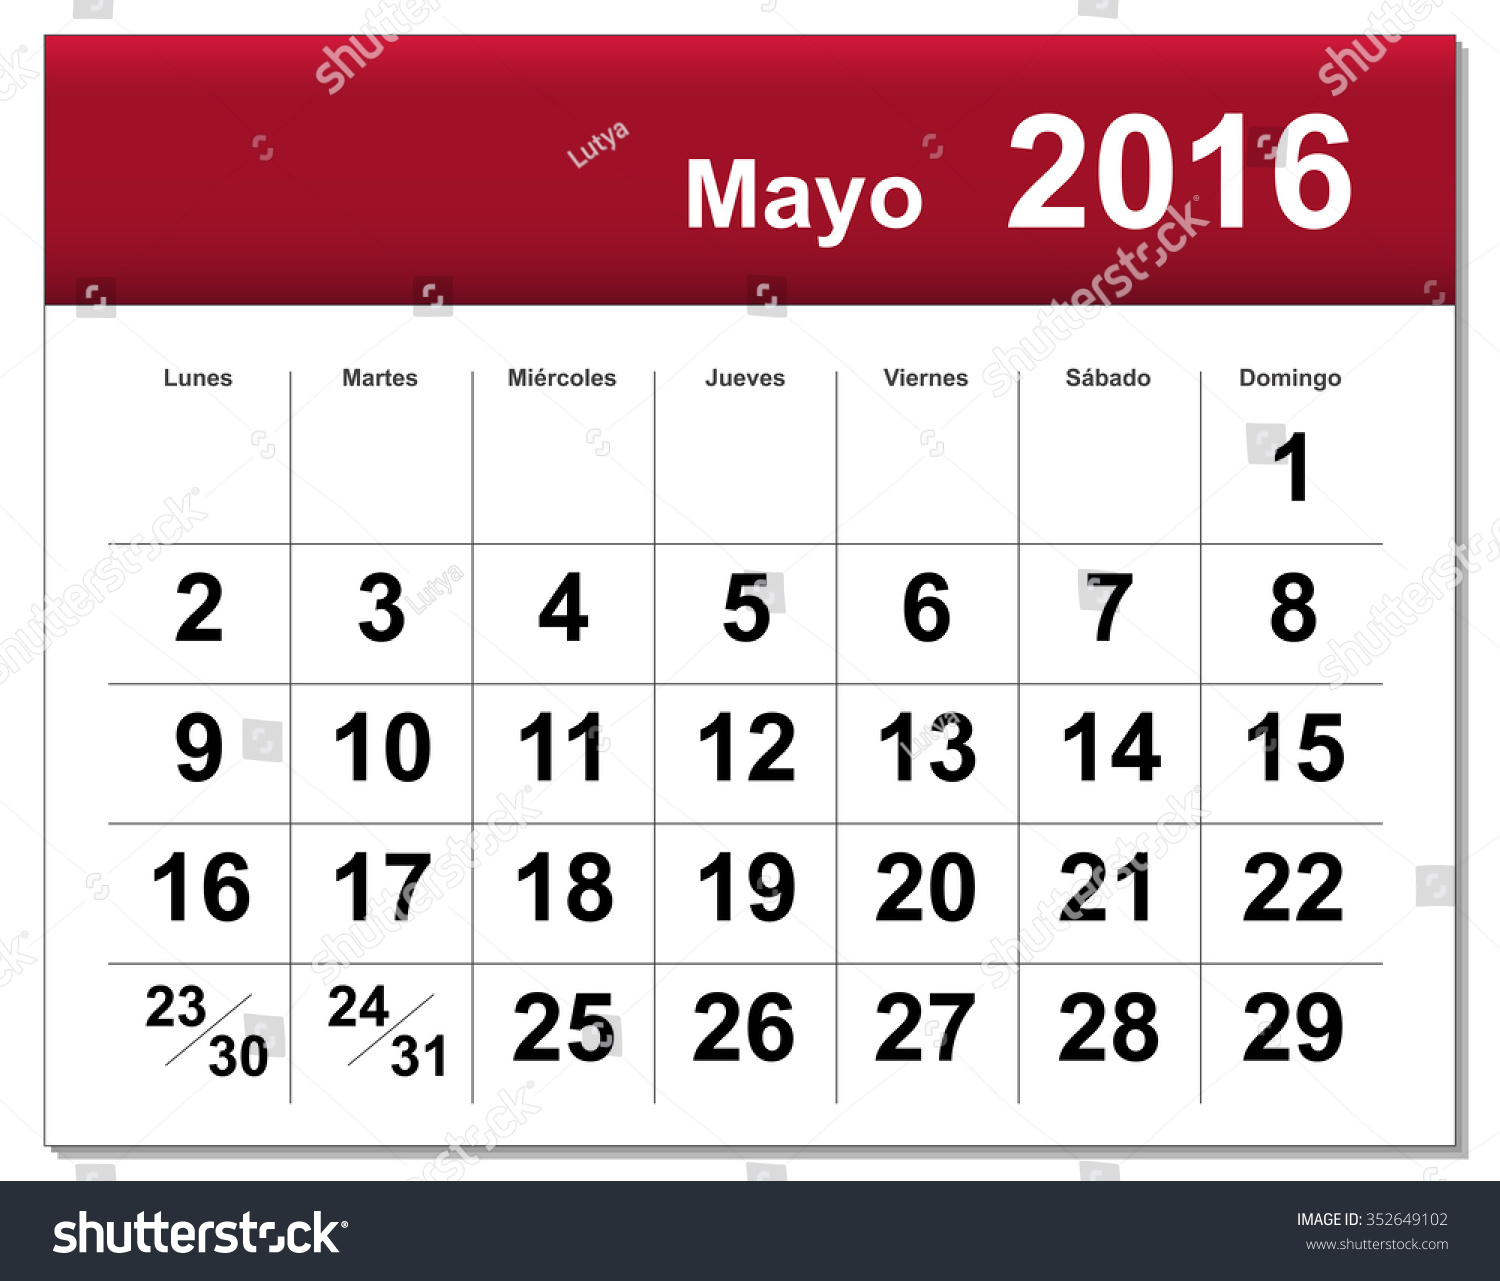 May Spanish Calendar : Eps file spanish version of may calendar the